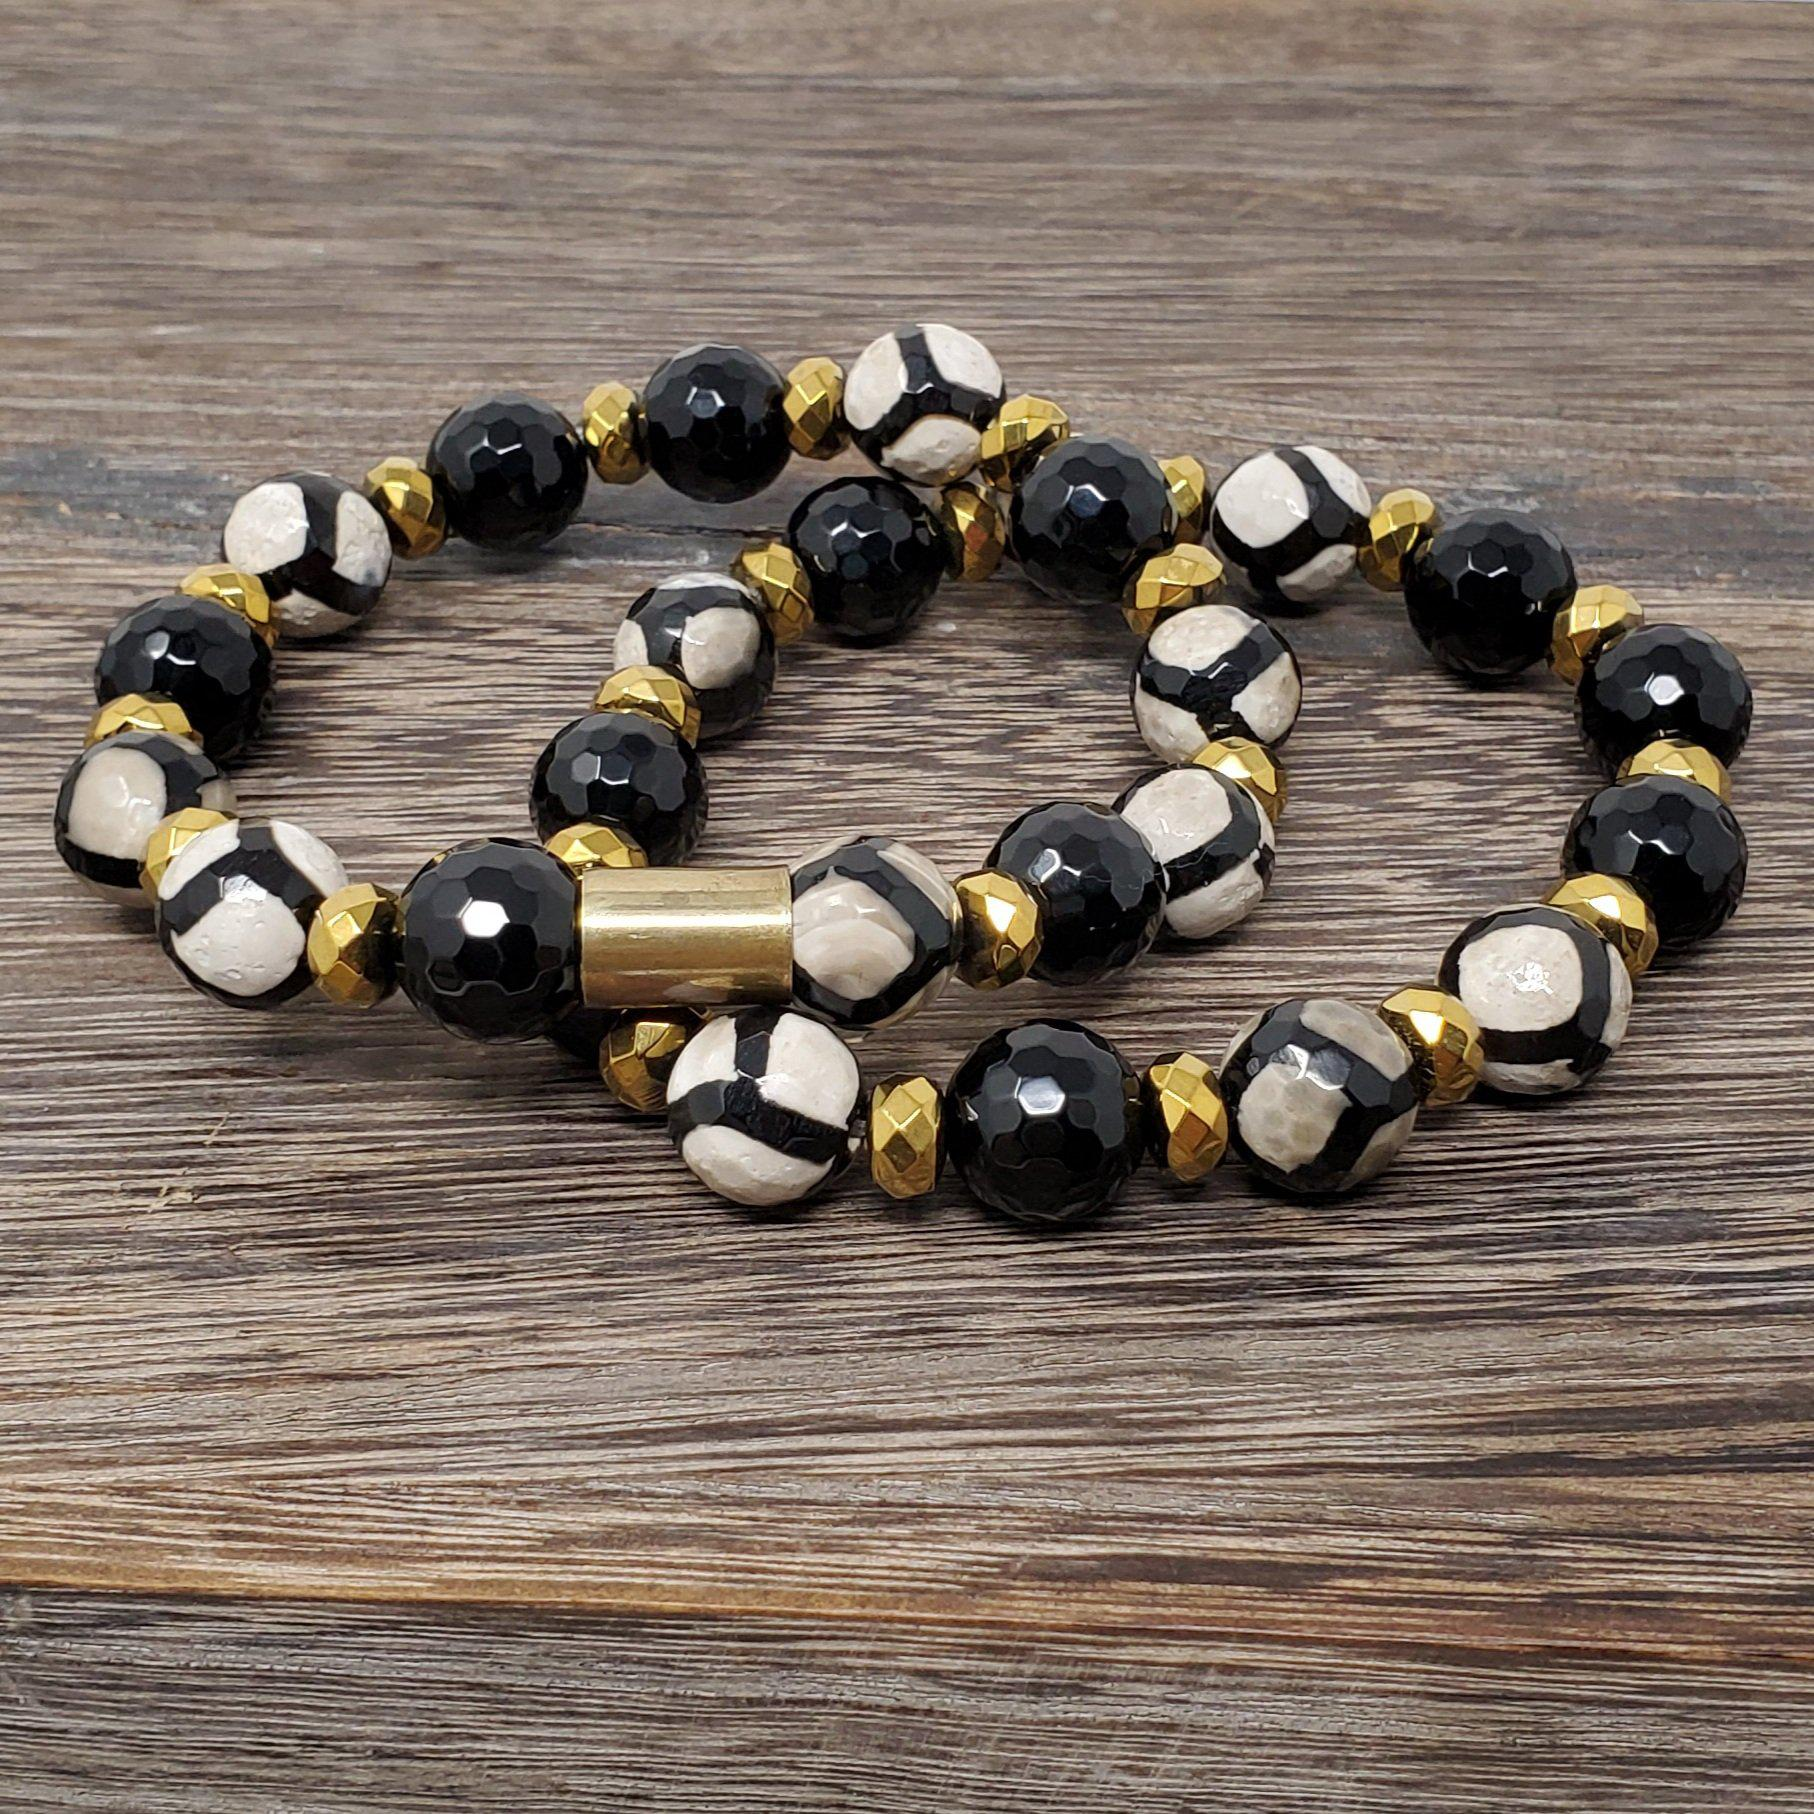 Faceted Black & White Tibetan Agate Onyx Bracelet Set